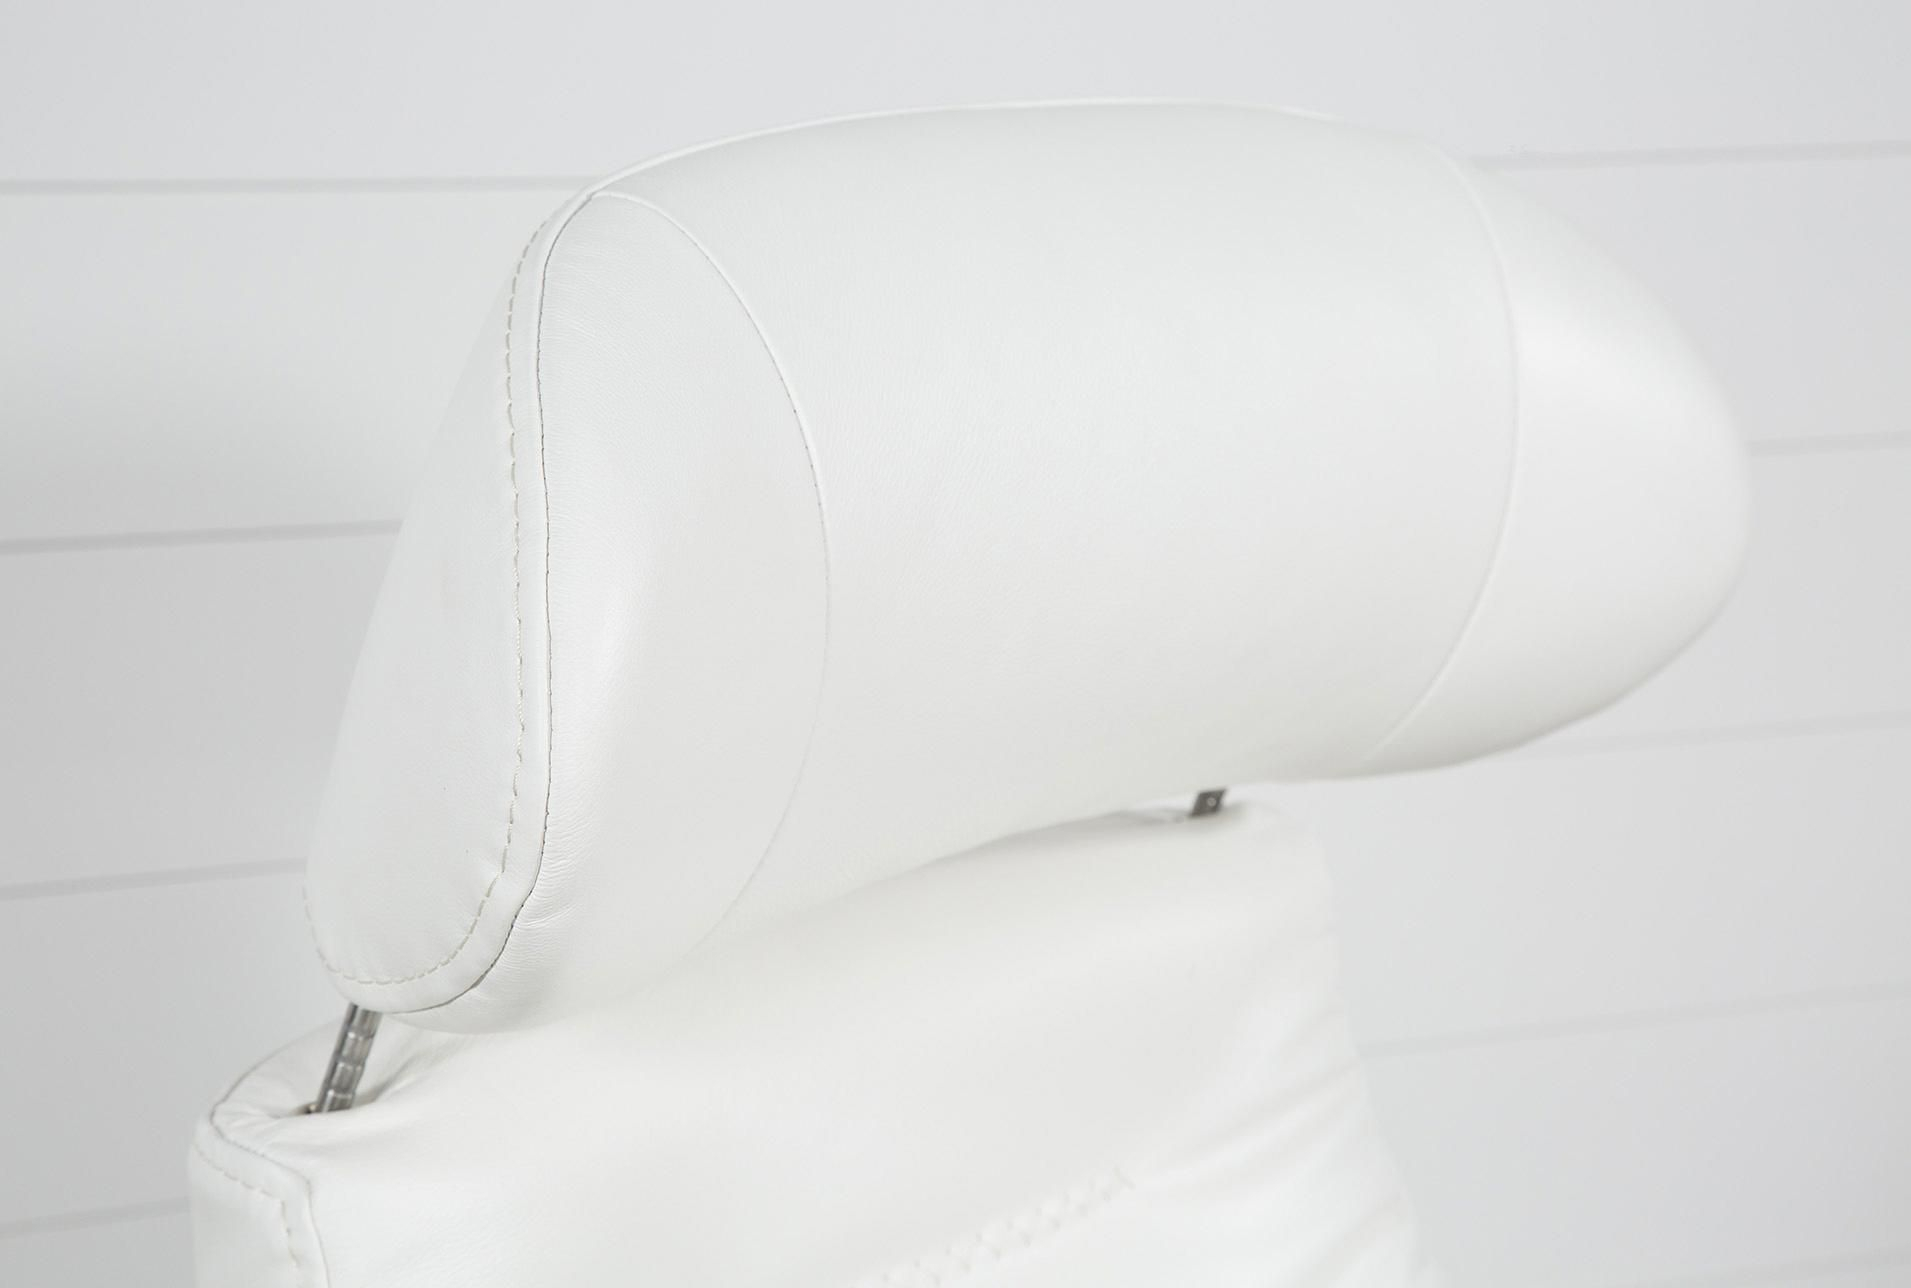 Amala White Leather Reclining Swivel Chair #whiteleatherchair Intended For Amala White Leather Reclining Swivel Chairs (Image 10 of 20)